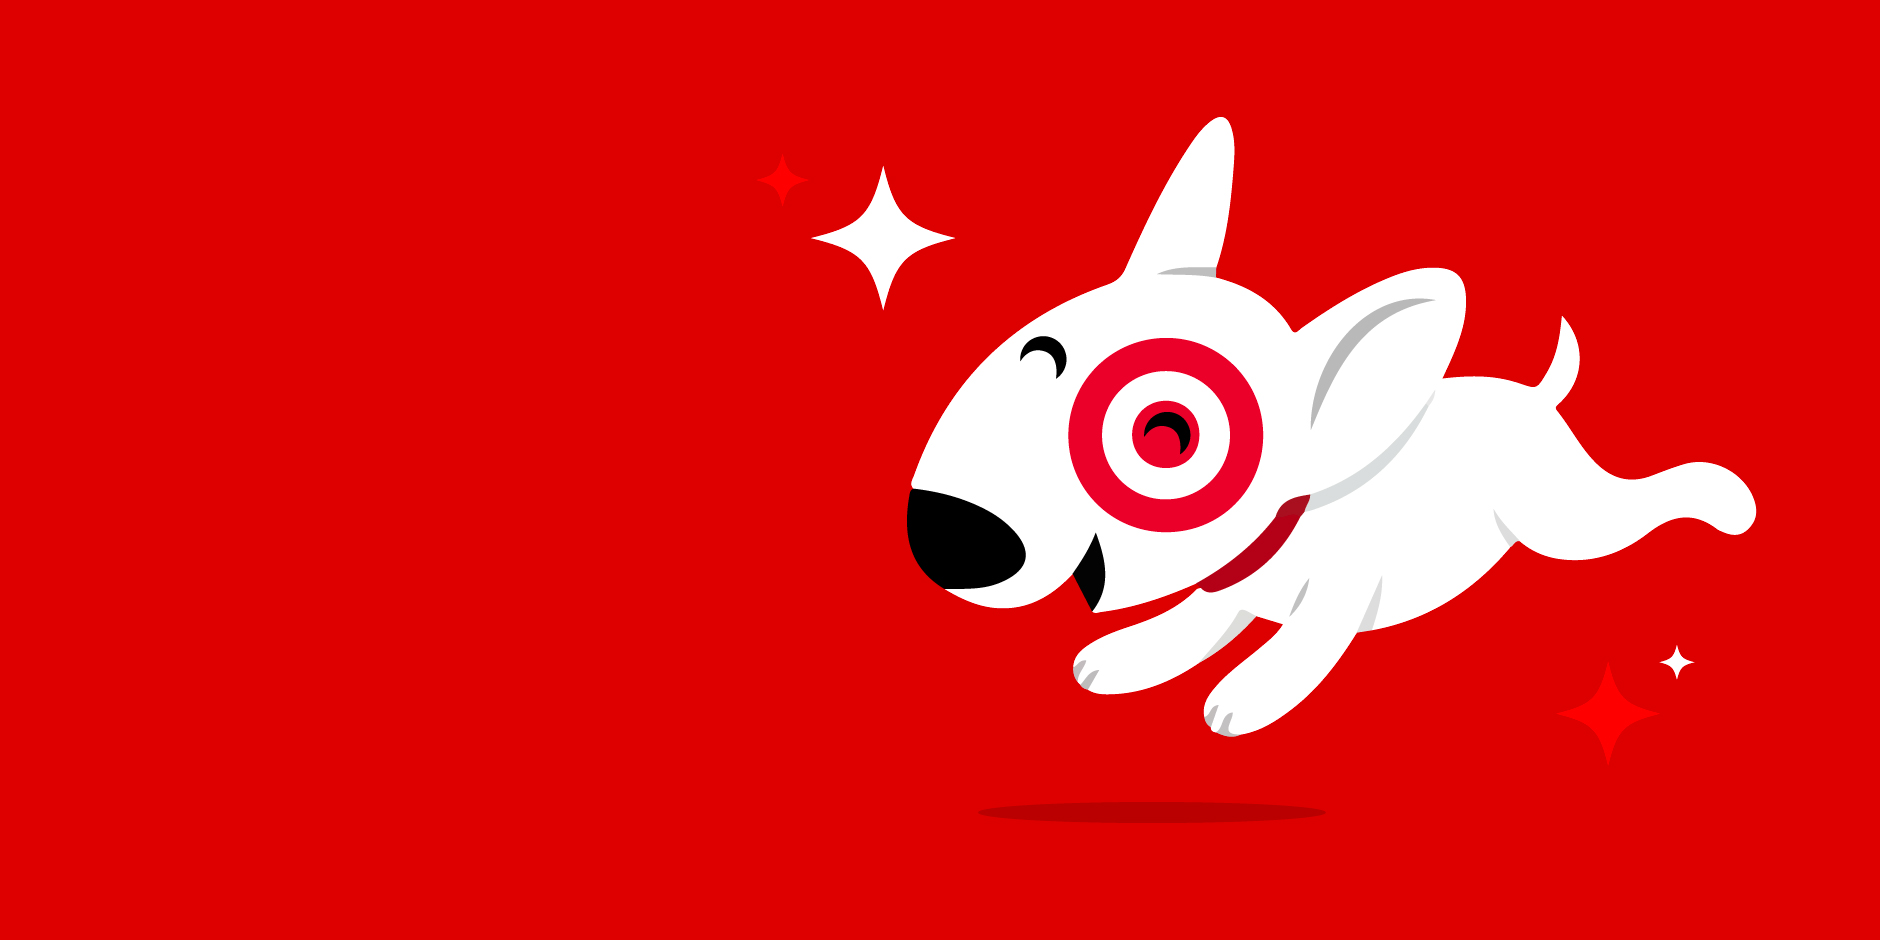 smiling Bullseye dog jumping on a red background